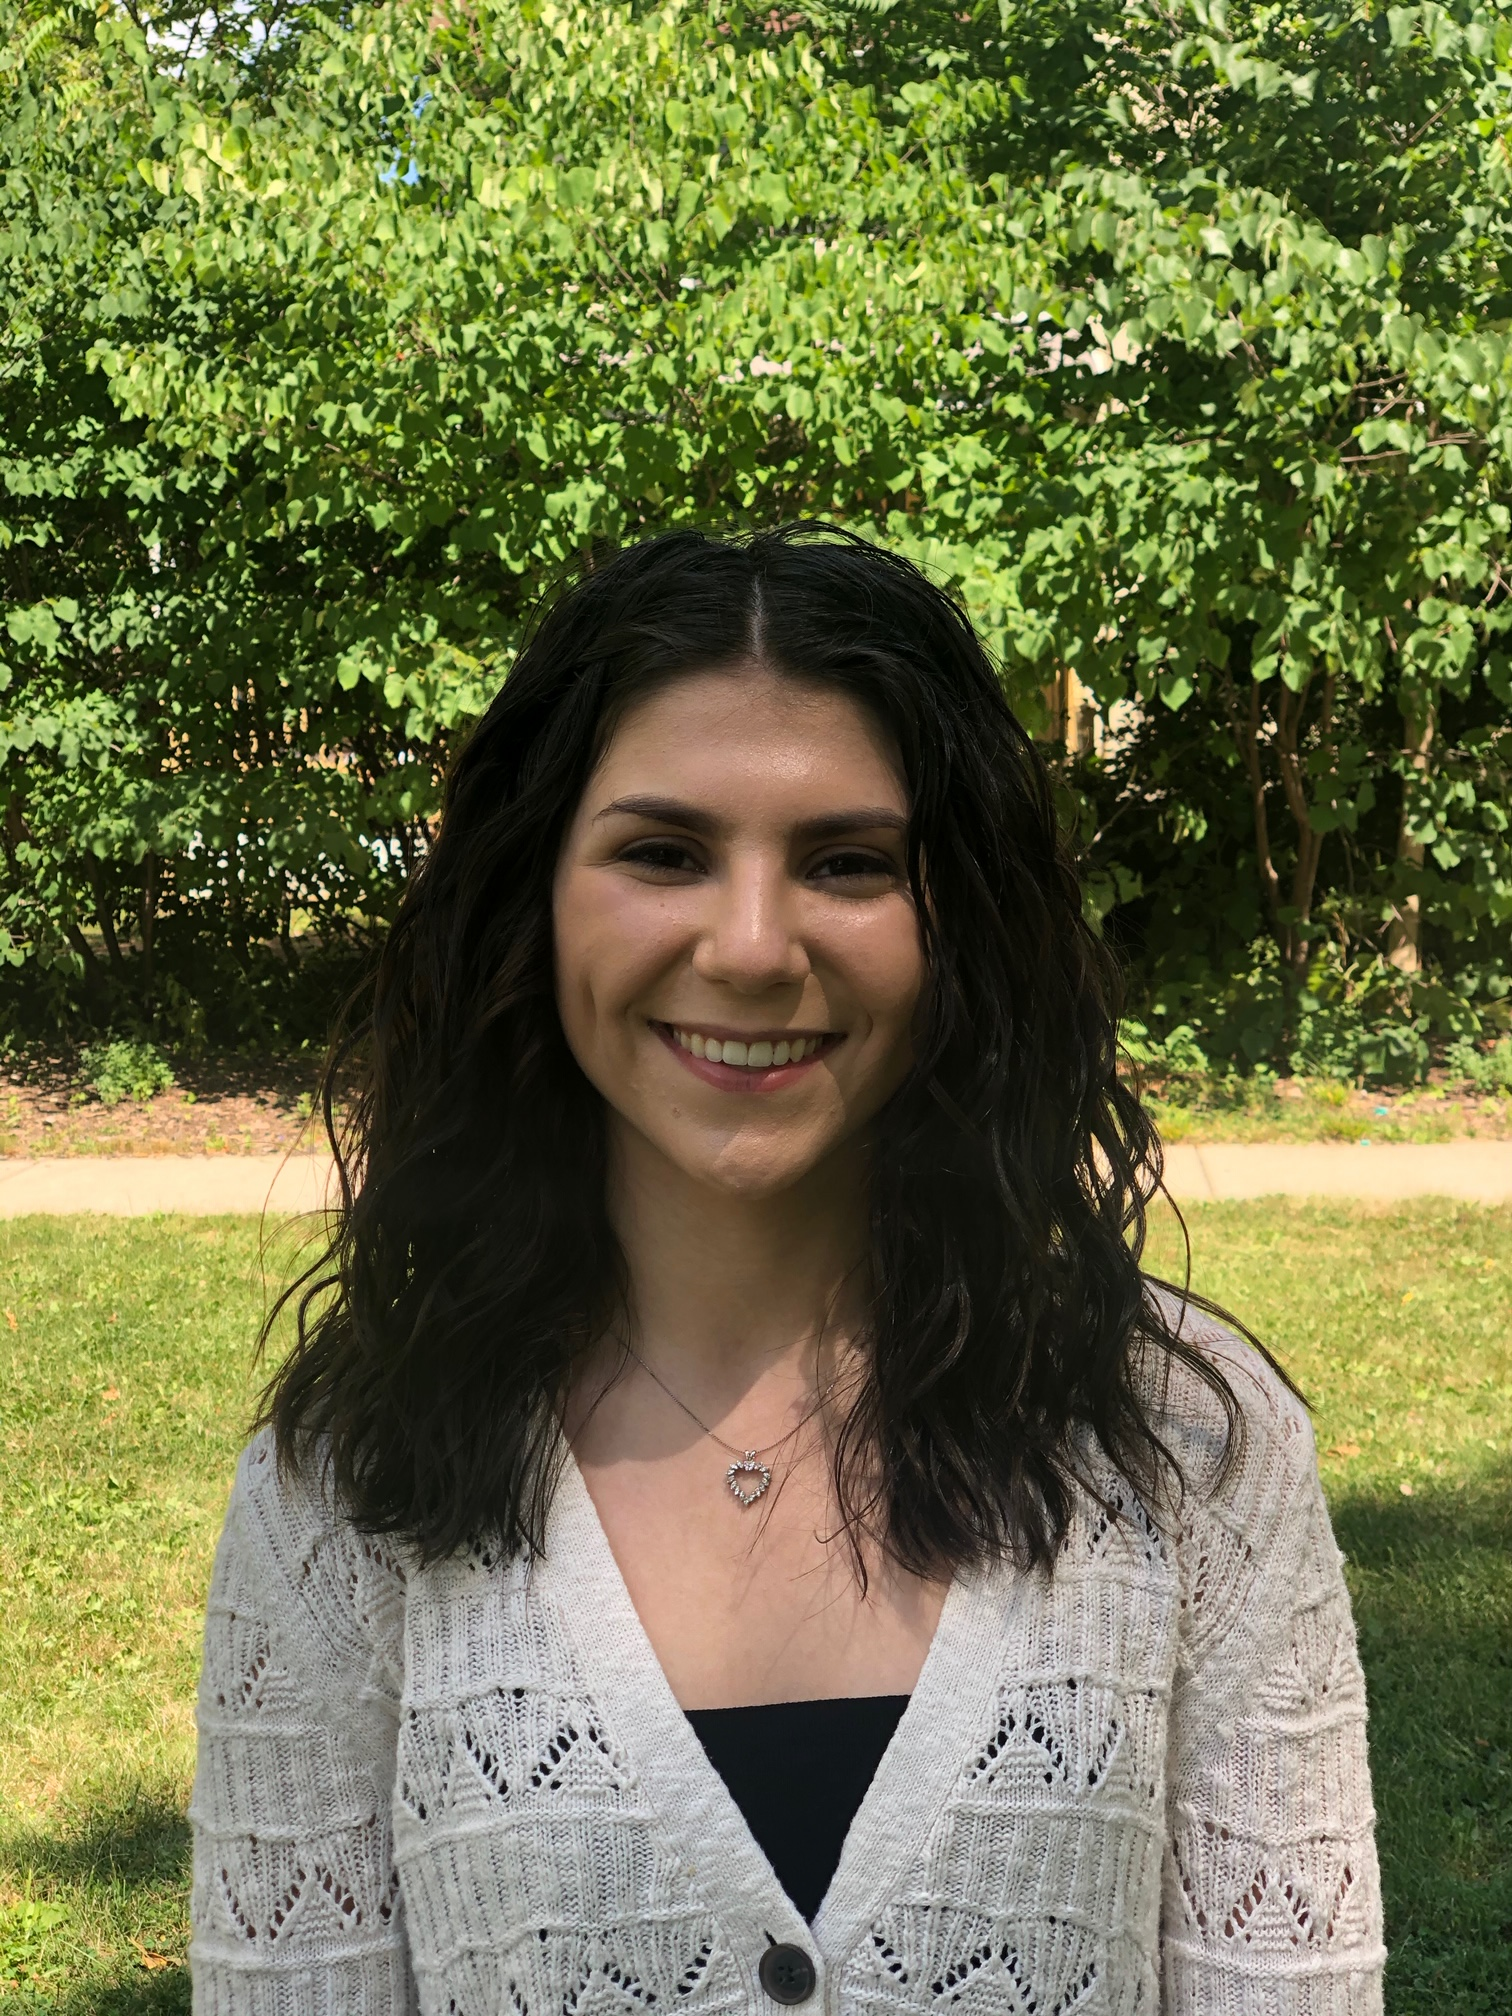 Sabrina Corsetti, 2020 Goldwater Scholar, developed a data model that leverages machine learning to predict COVID-19 cases and deaths for the United States up to 40 days in advance.